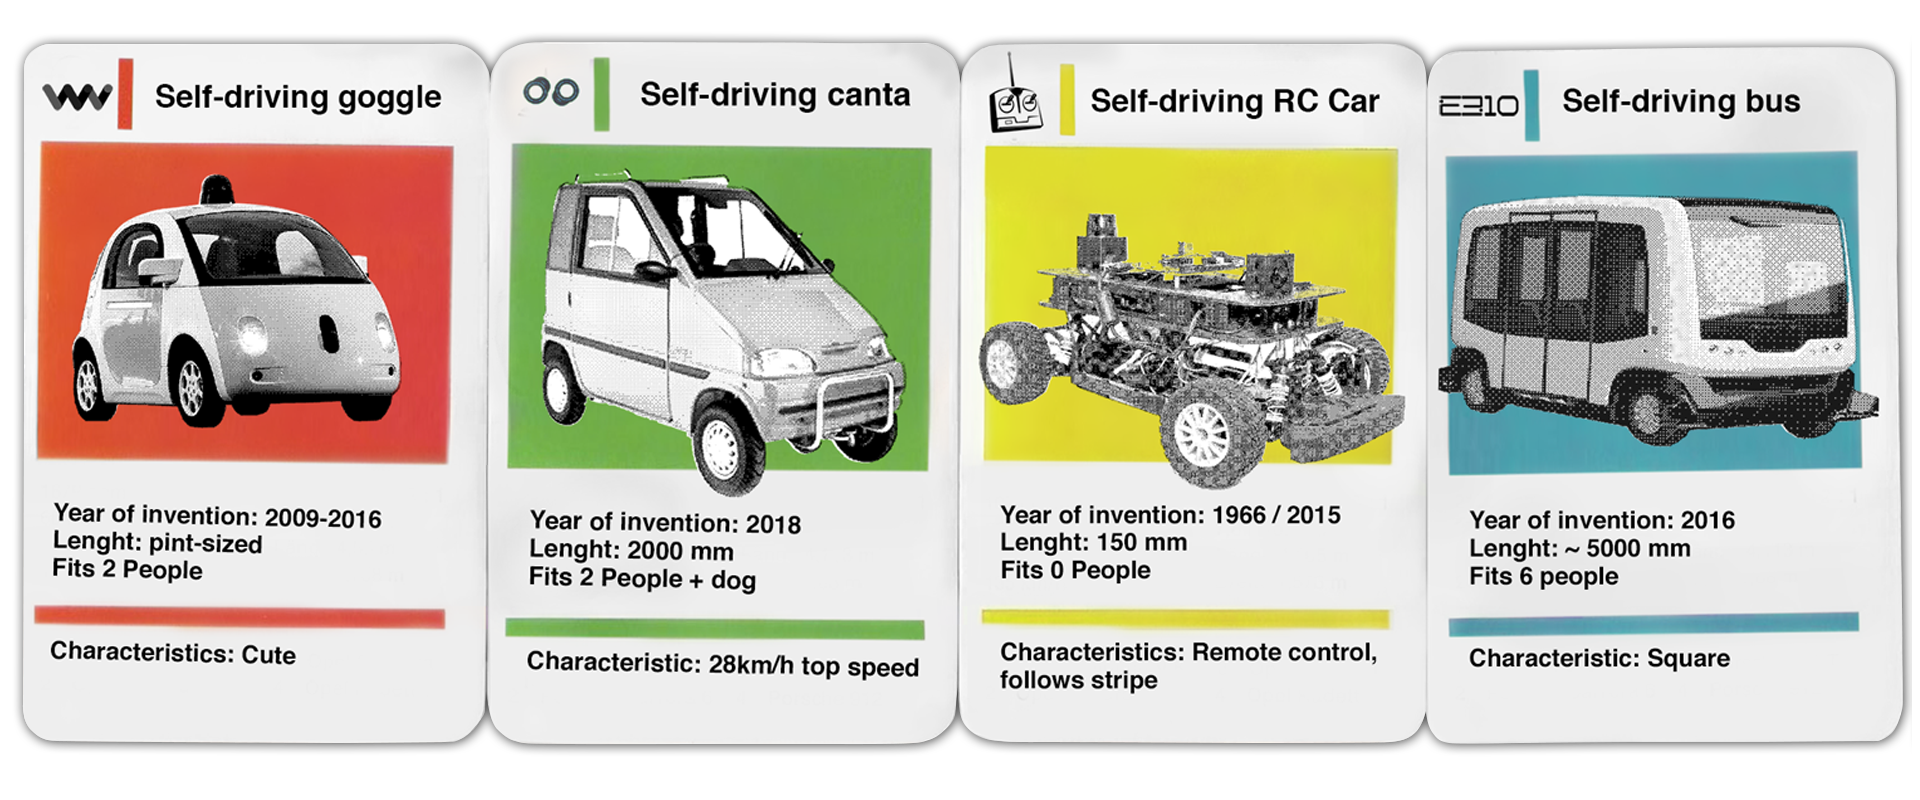 Self-driving-cartett-1920x800.png